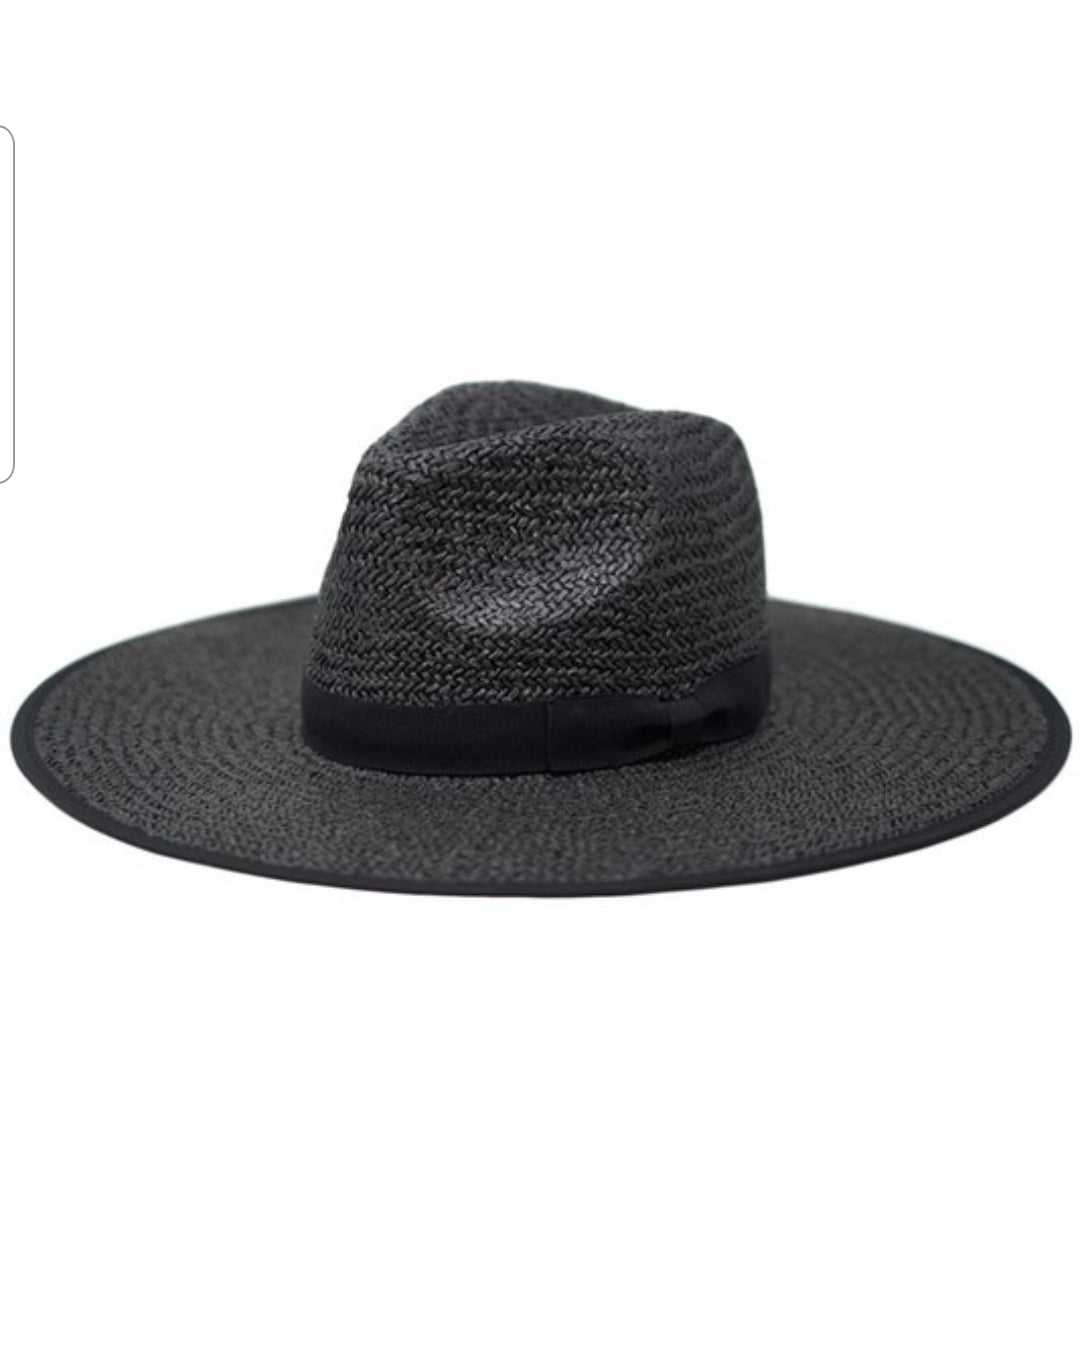 Black Sand Beach Hat